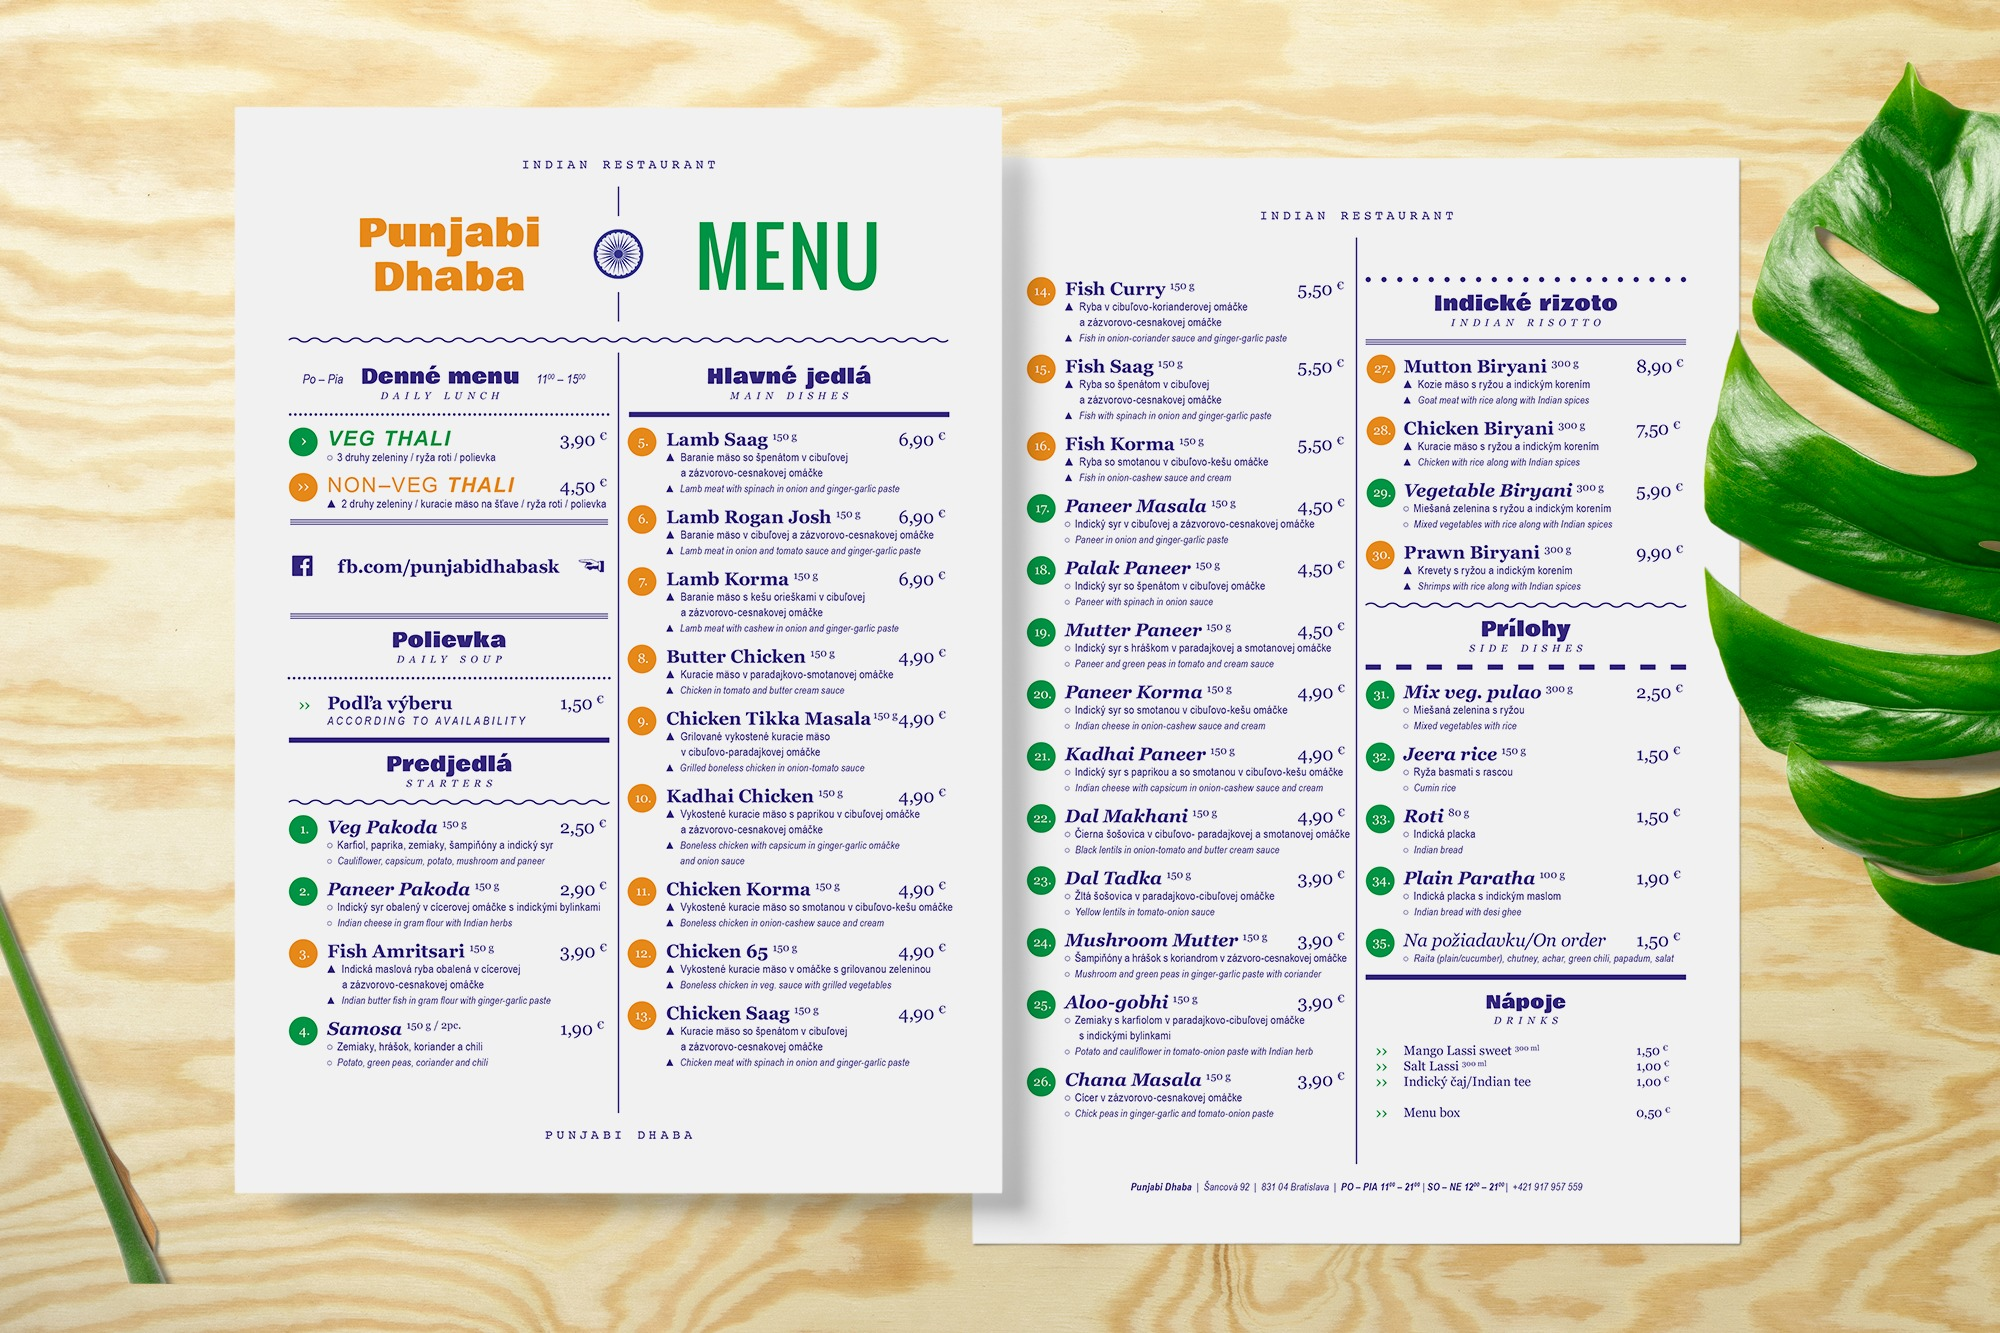 PUNJABI_DHABA_MENU_2_EDIT